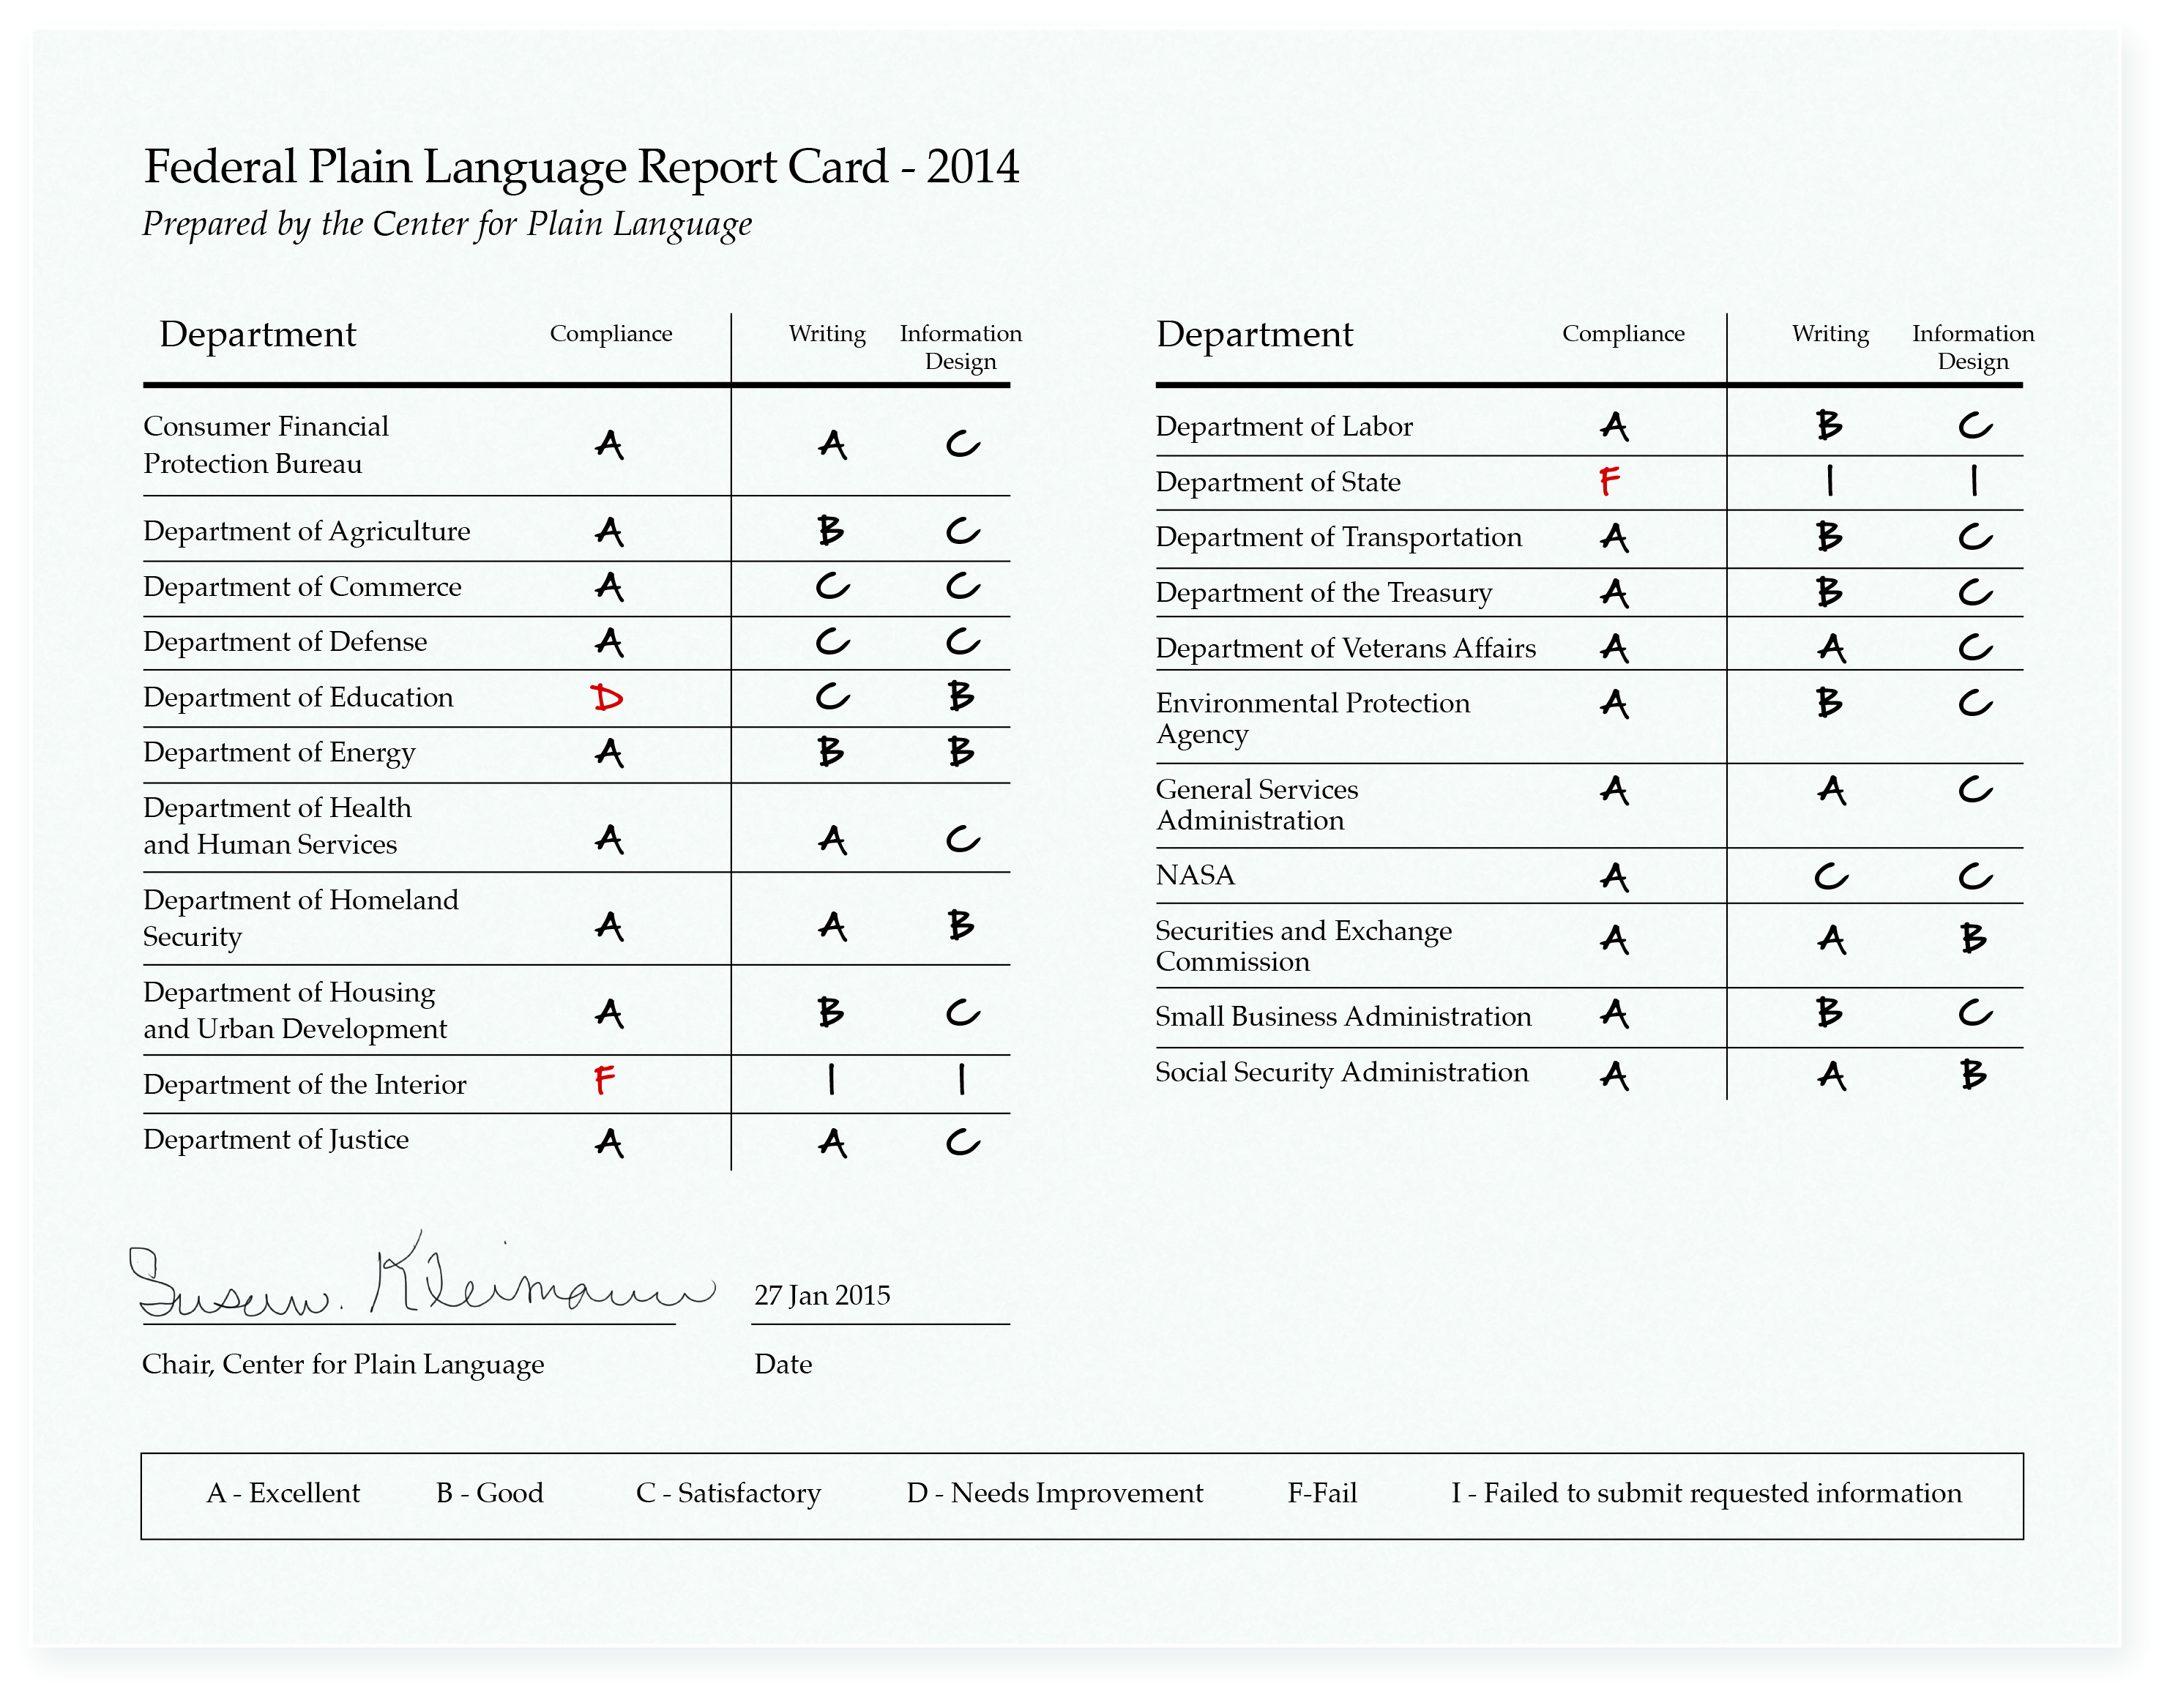 Pictures of the book the report card